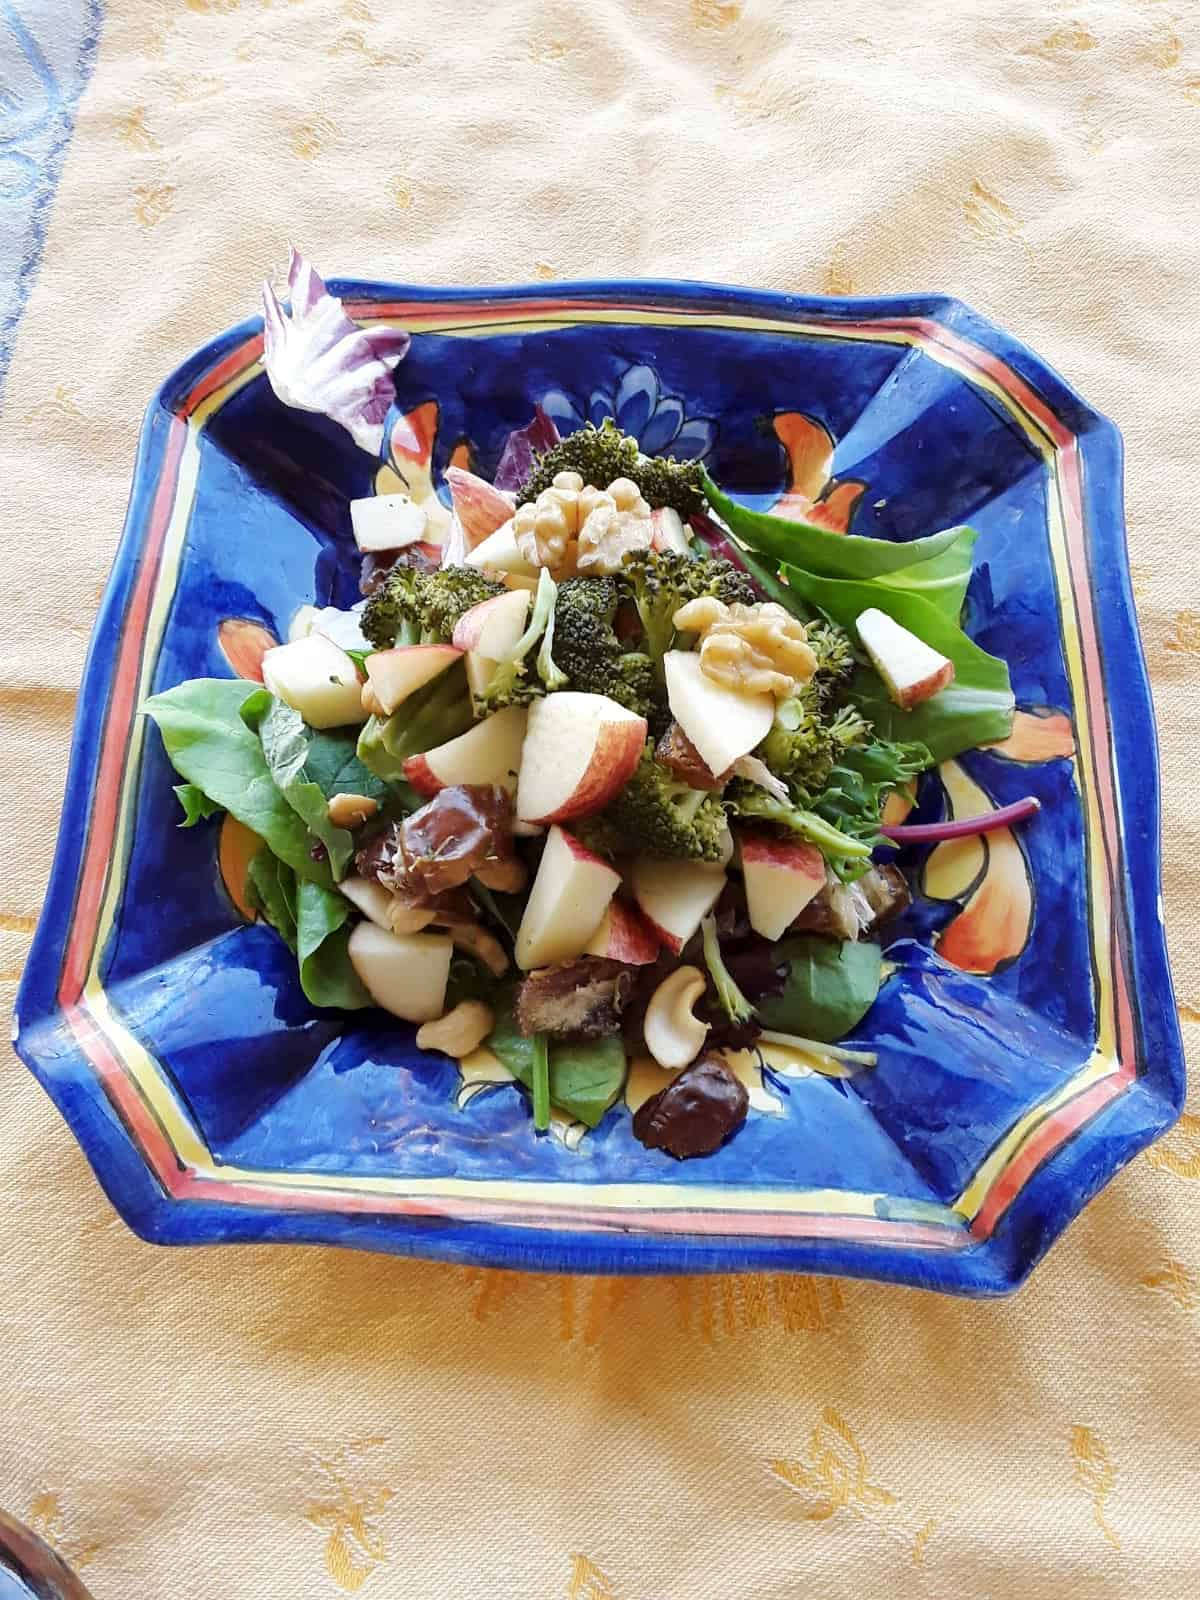 Broccoli apple walnut salad topped with chopped dates on a blue ceramic plate.